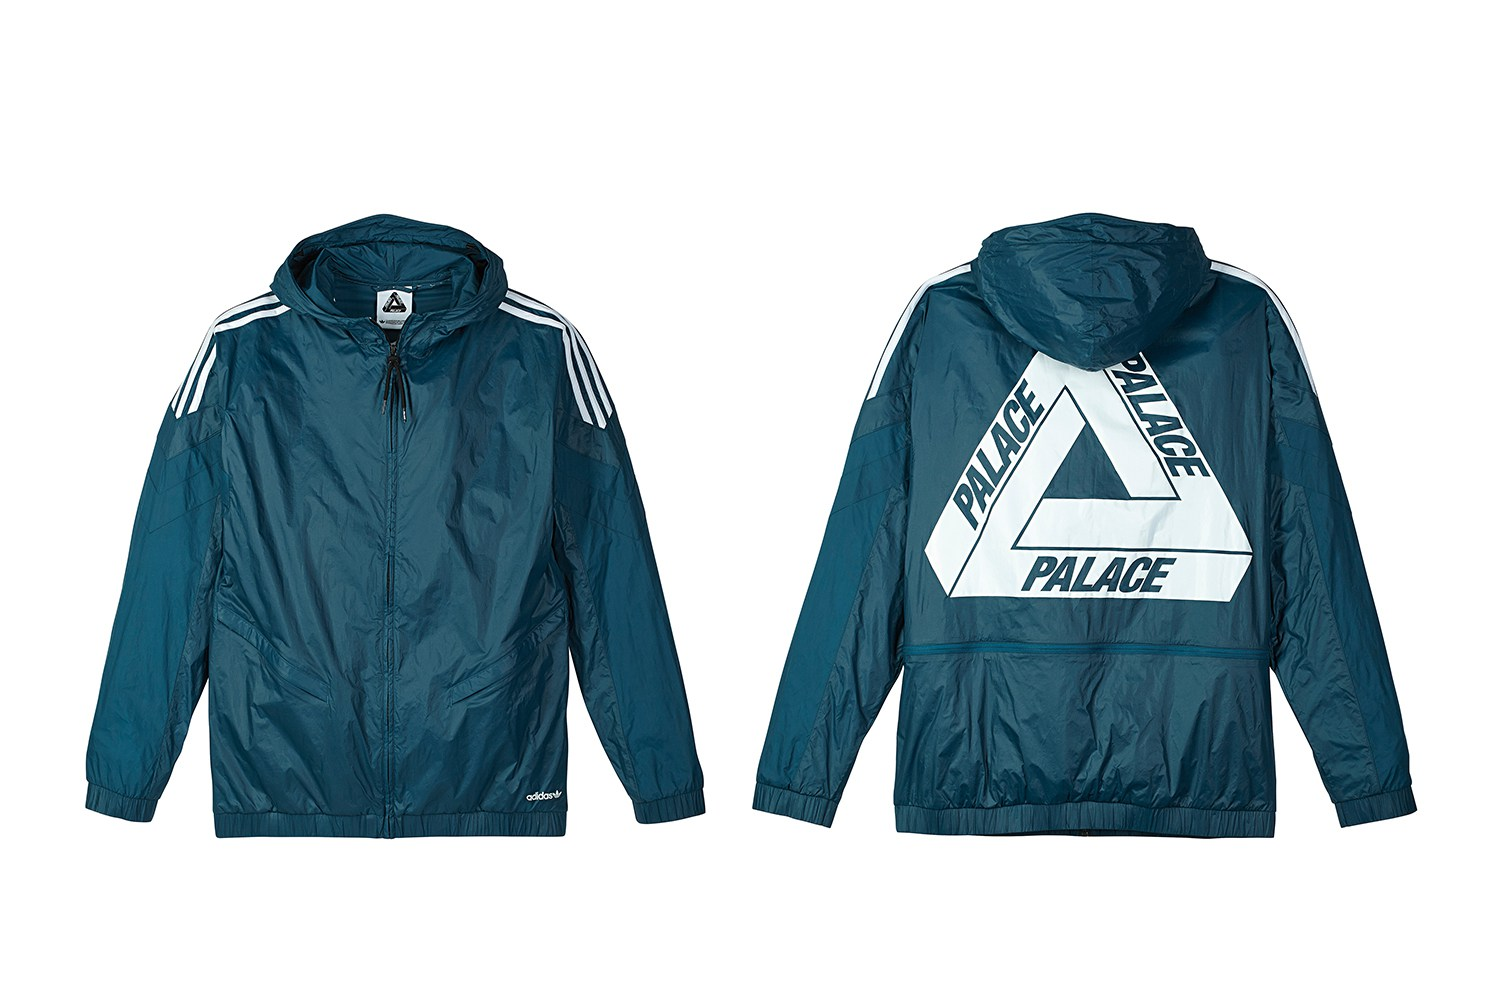 adidas-originals-palace-ss16-spring-summer-2016-collection-1